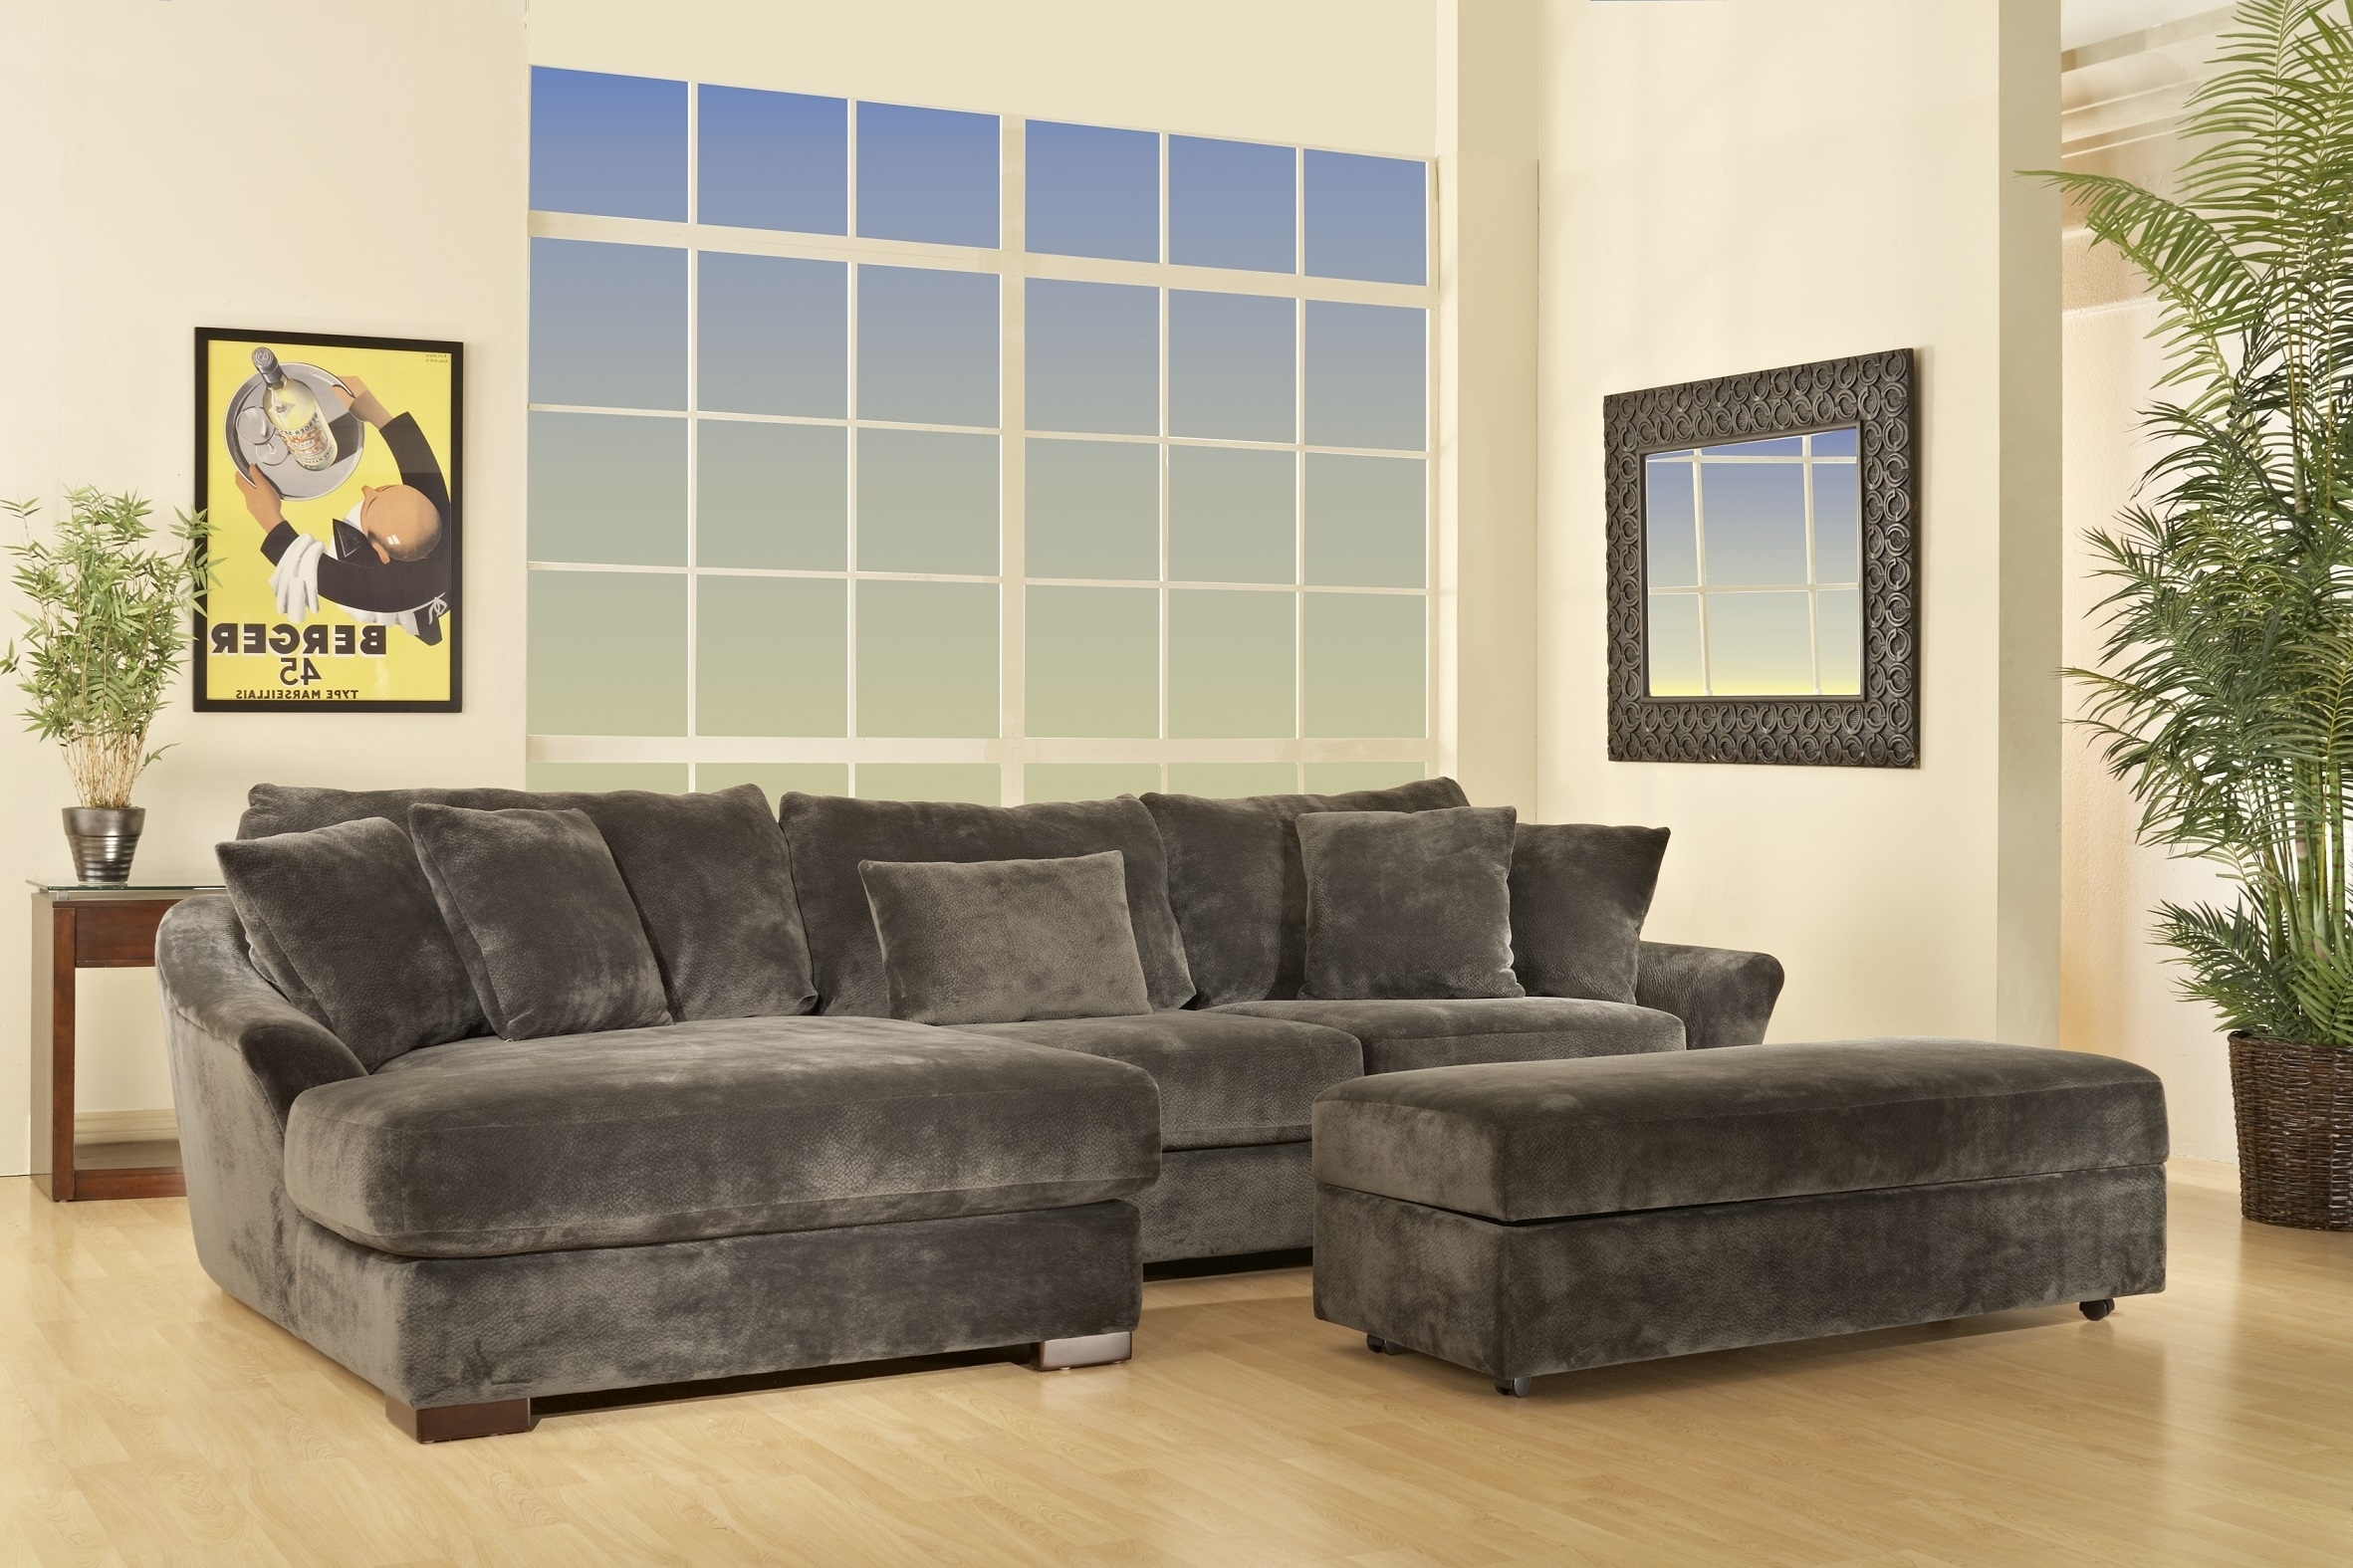 Atlanta Sofa Sectional With Left Arm Chaisefairmont Designs With Sectional Sofas At Atlanta (View 3 of 15)